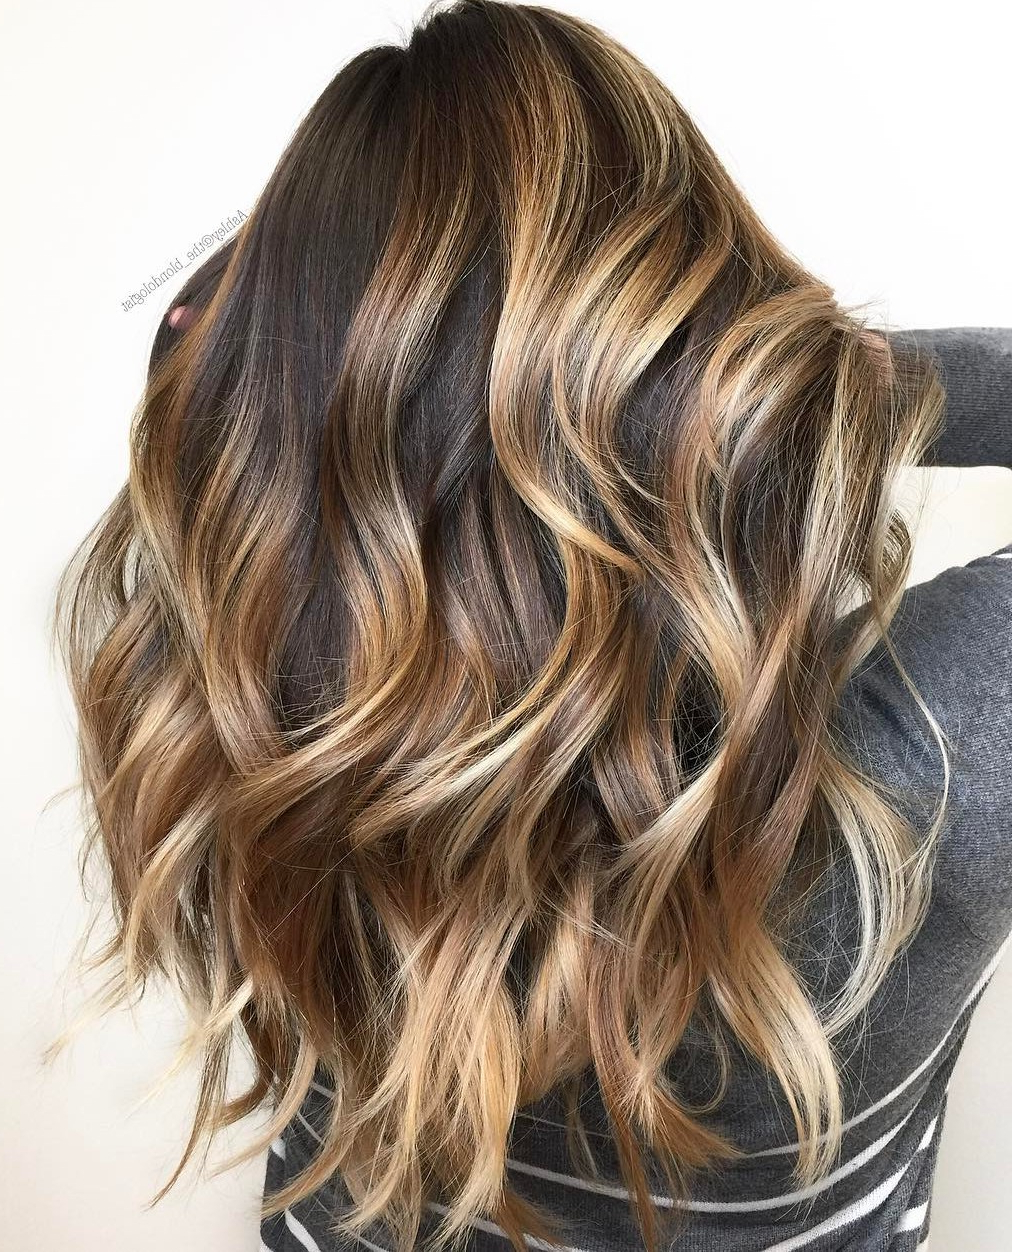 Hairstyles And Haircuts For Thick Hair In 2018 — Therighthairstyles For Short And Classy Haircuts For Thick Hair (View 7 of 20)